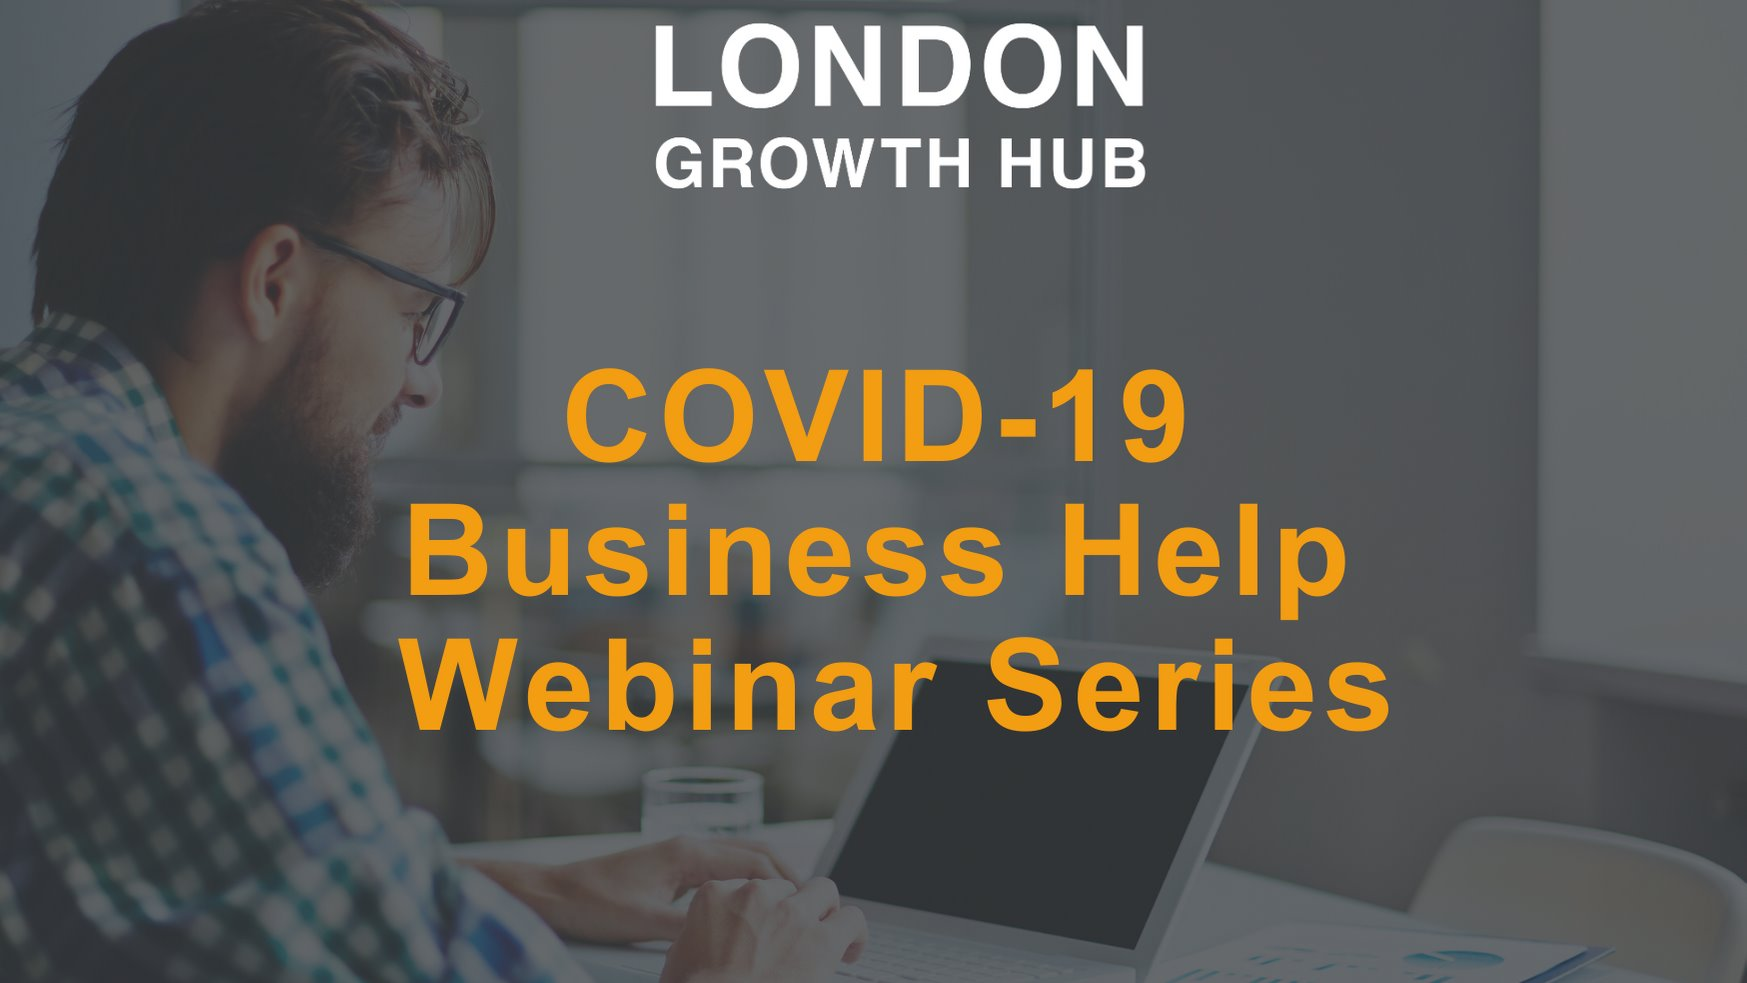 COVID-19 Business Help Series